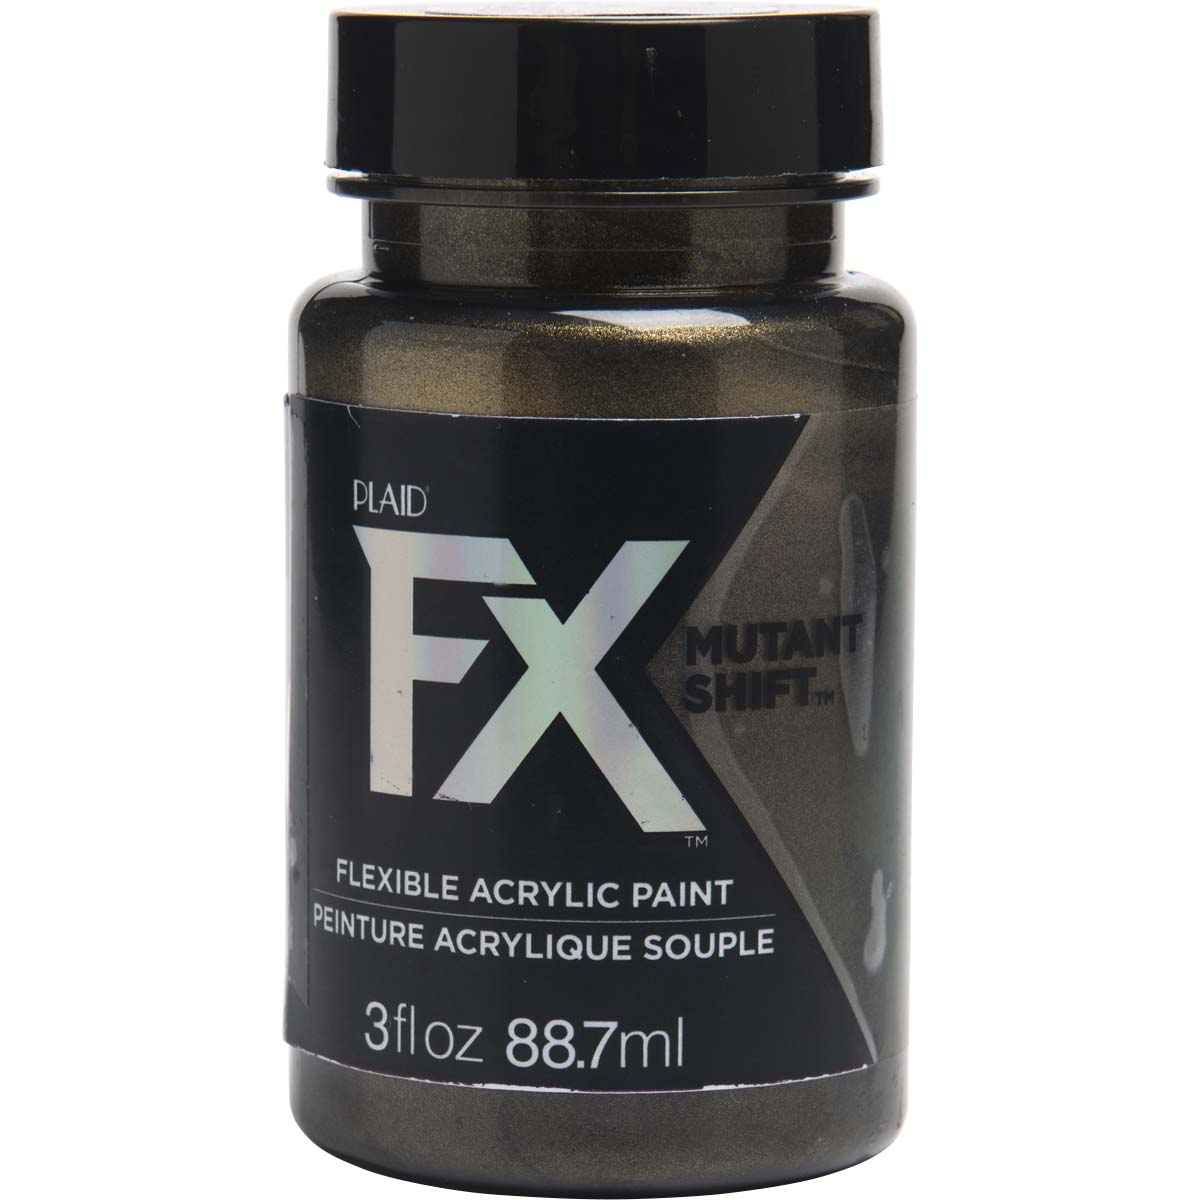 PlaidFX Mutant Shift Flexible Acrylic Paint - Gamma Ray, 3 oz. - 36914